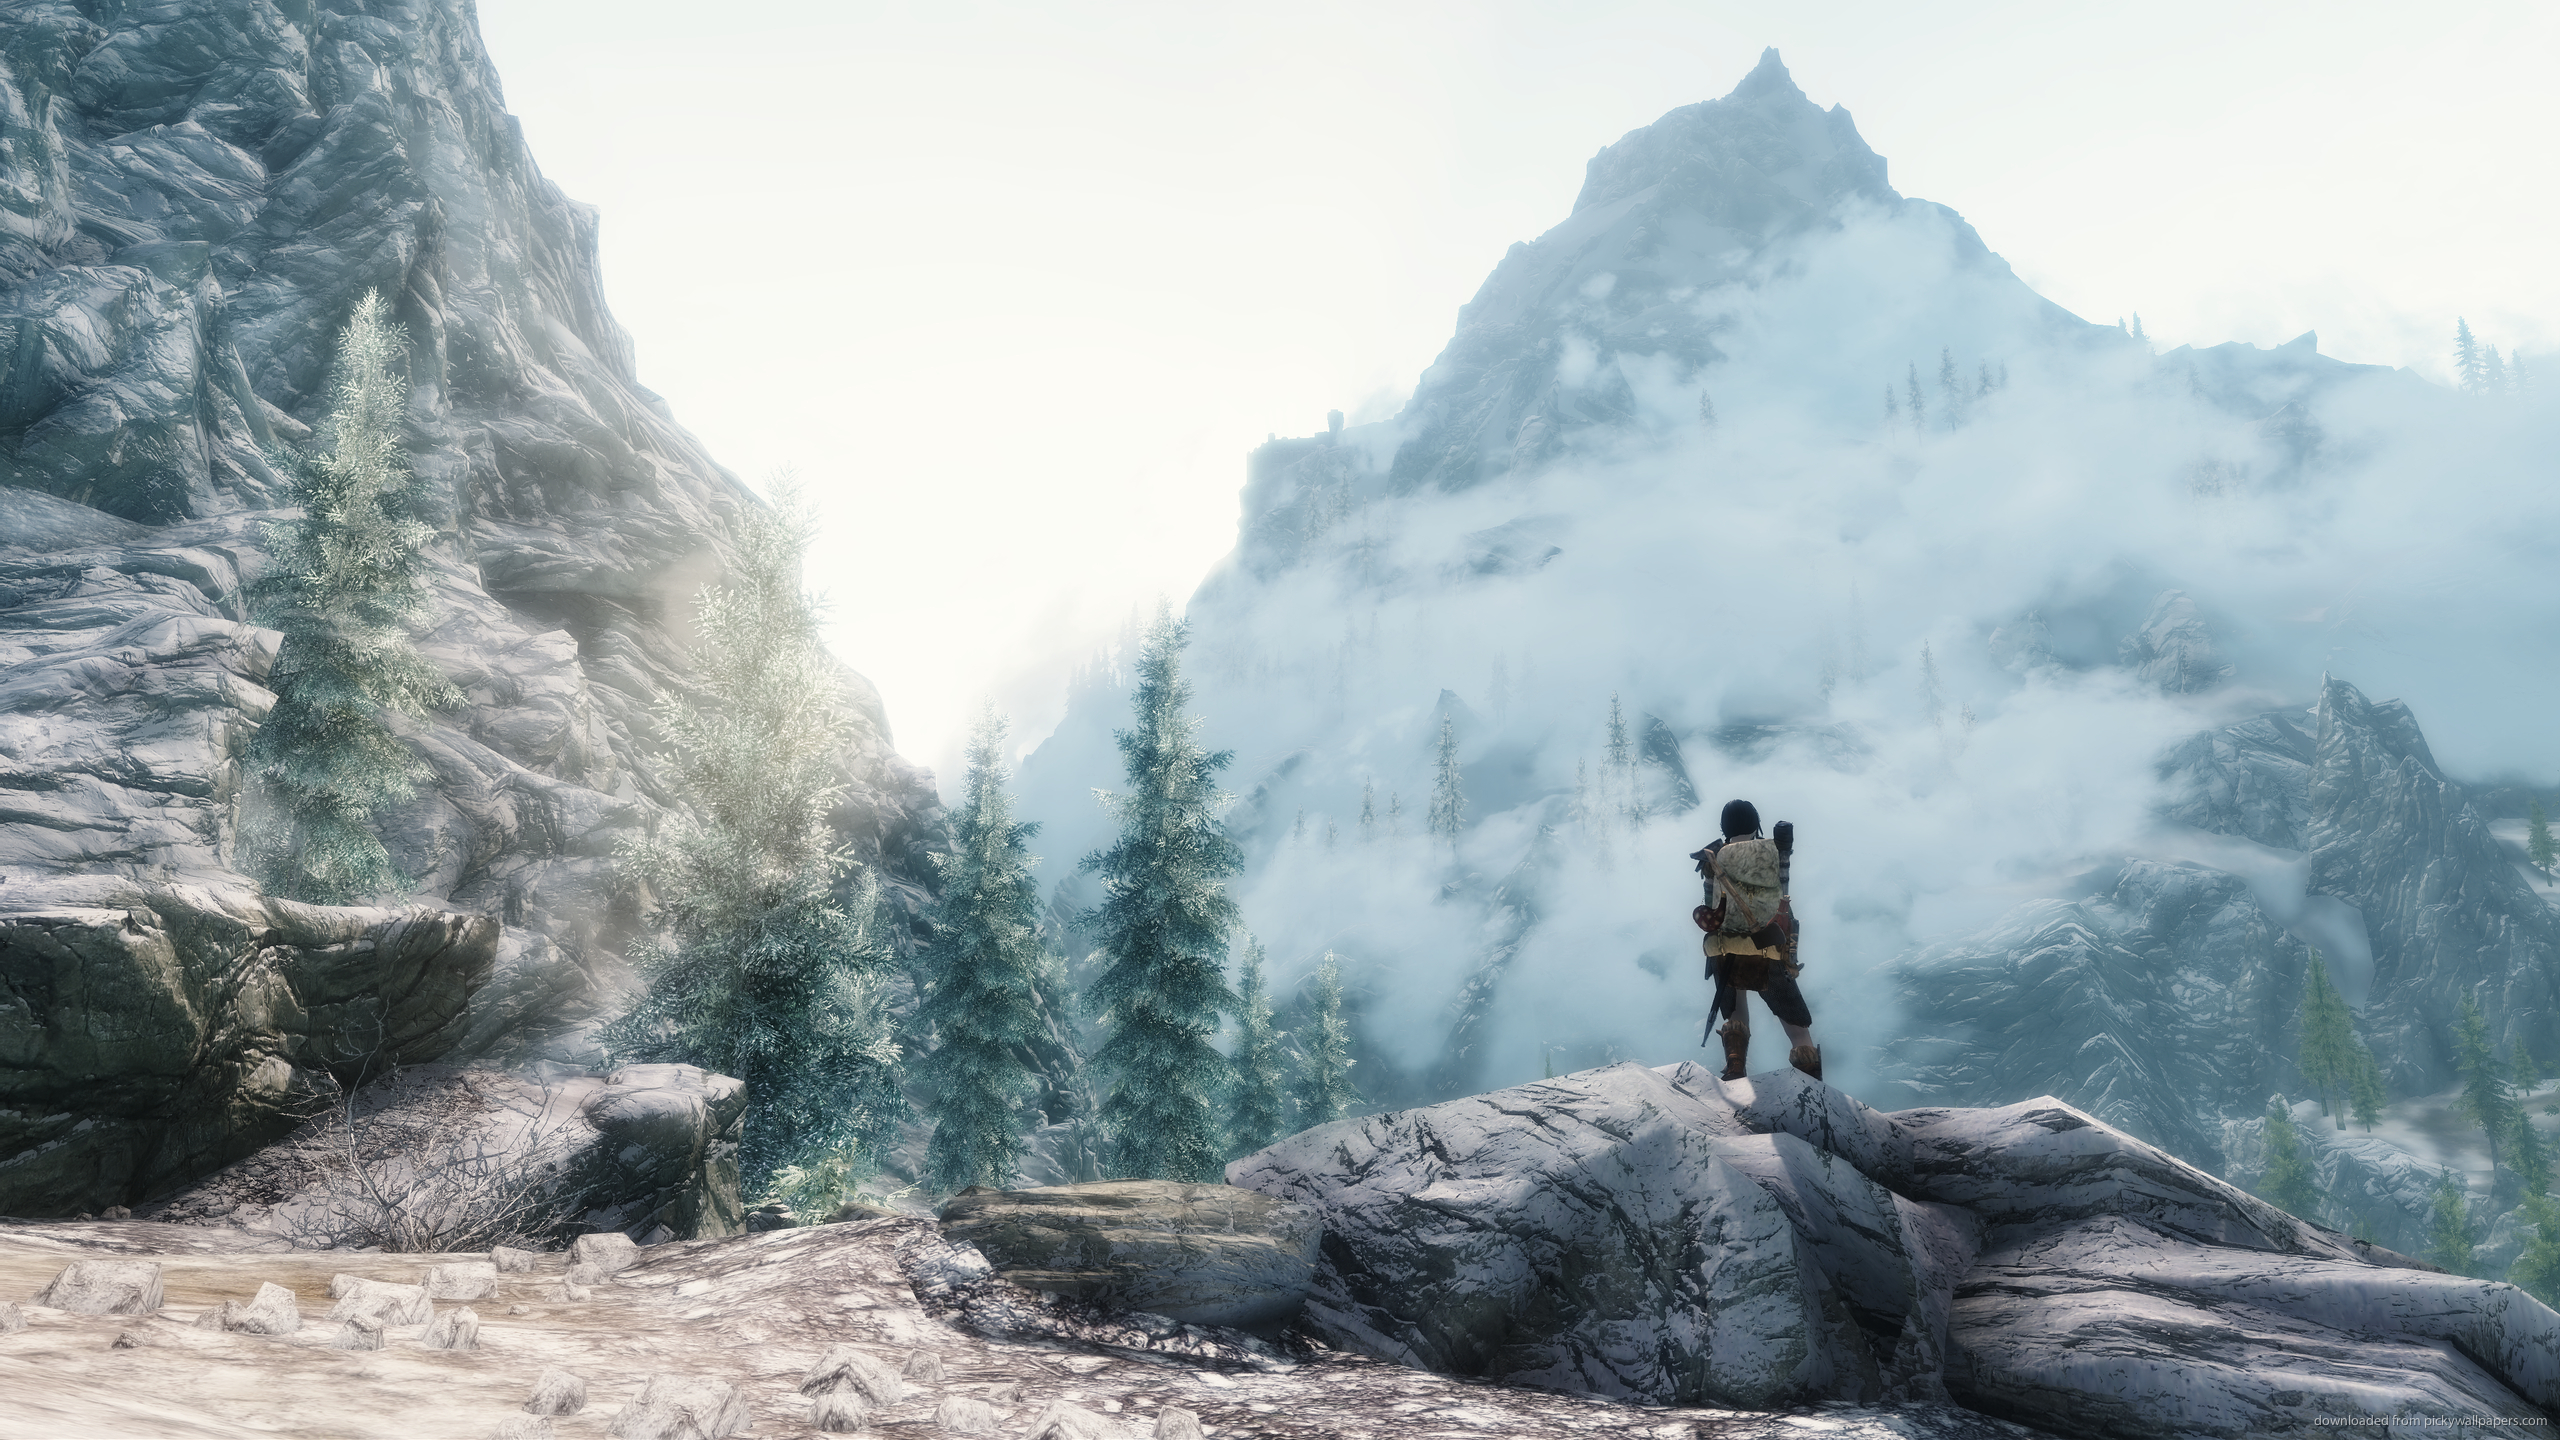 2560x1440 Wallpaper Skyrim Link to this wallpaper skyrim 2560x1440